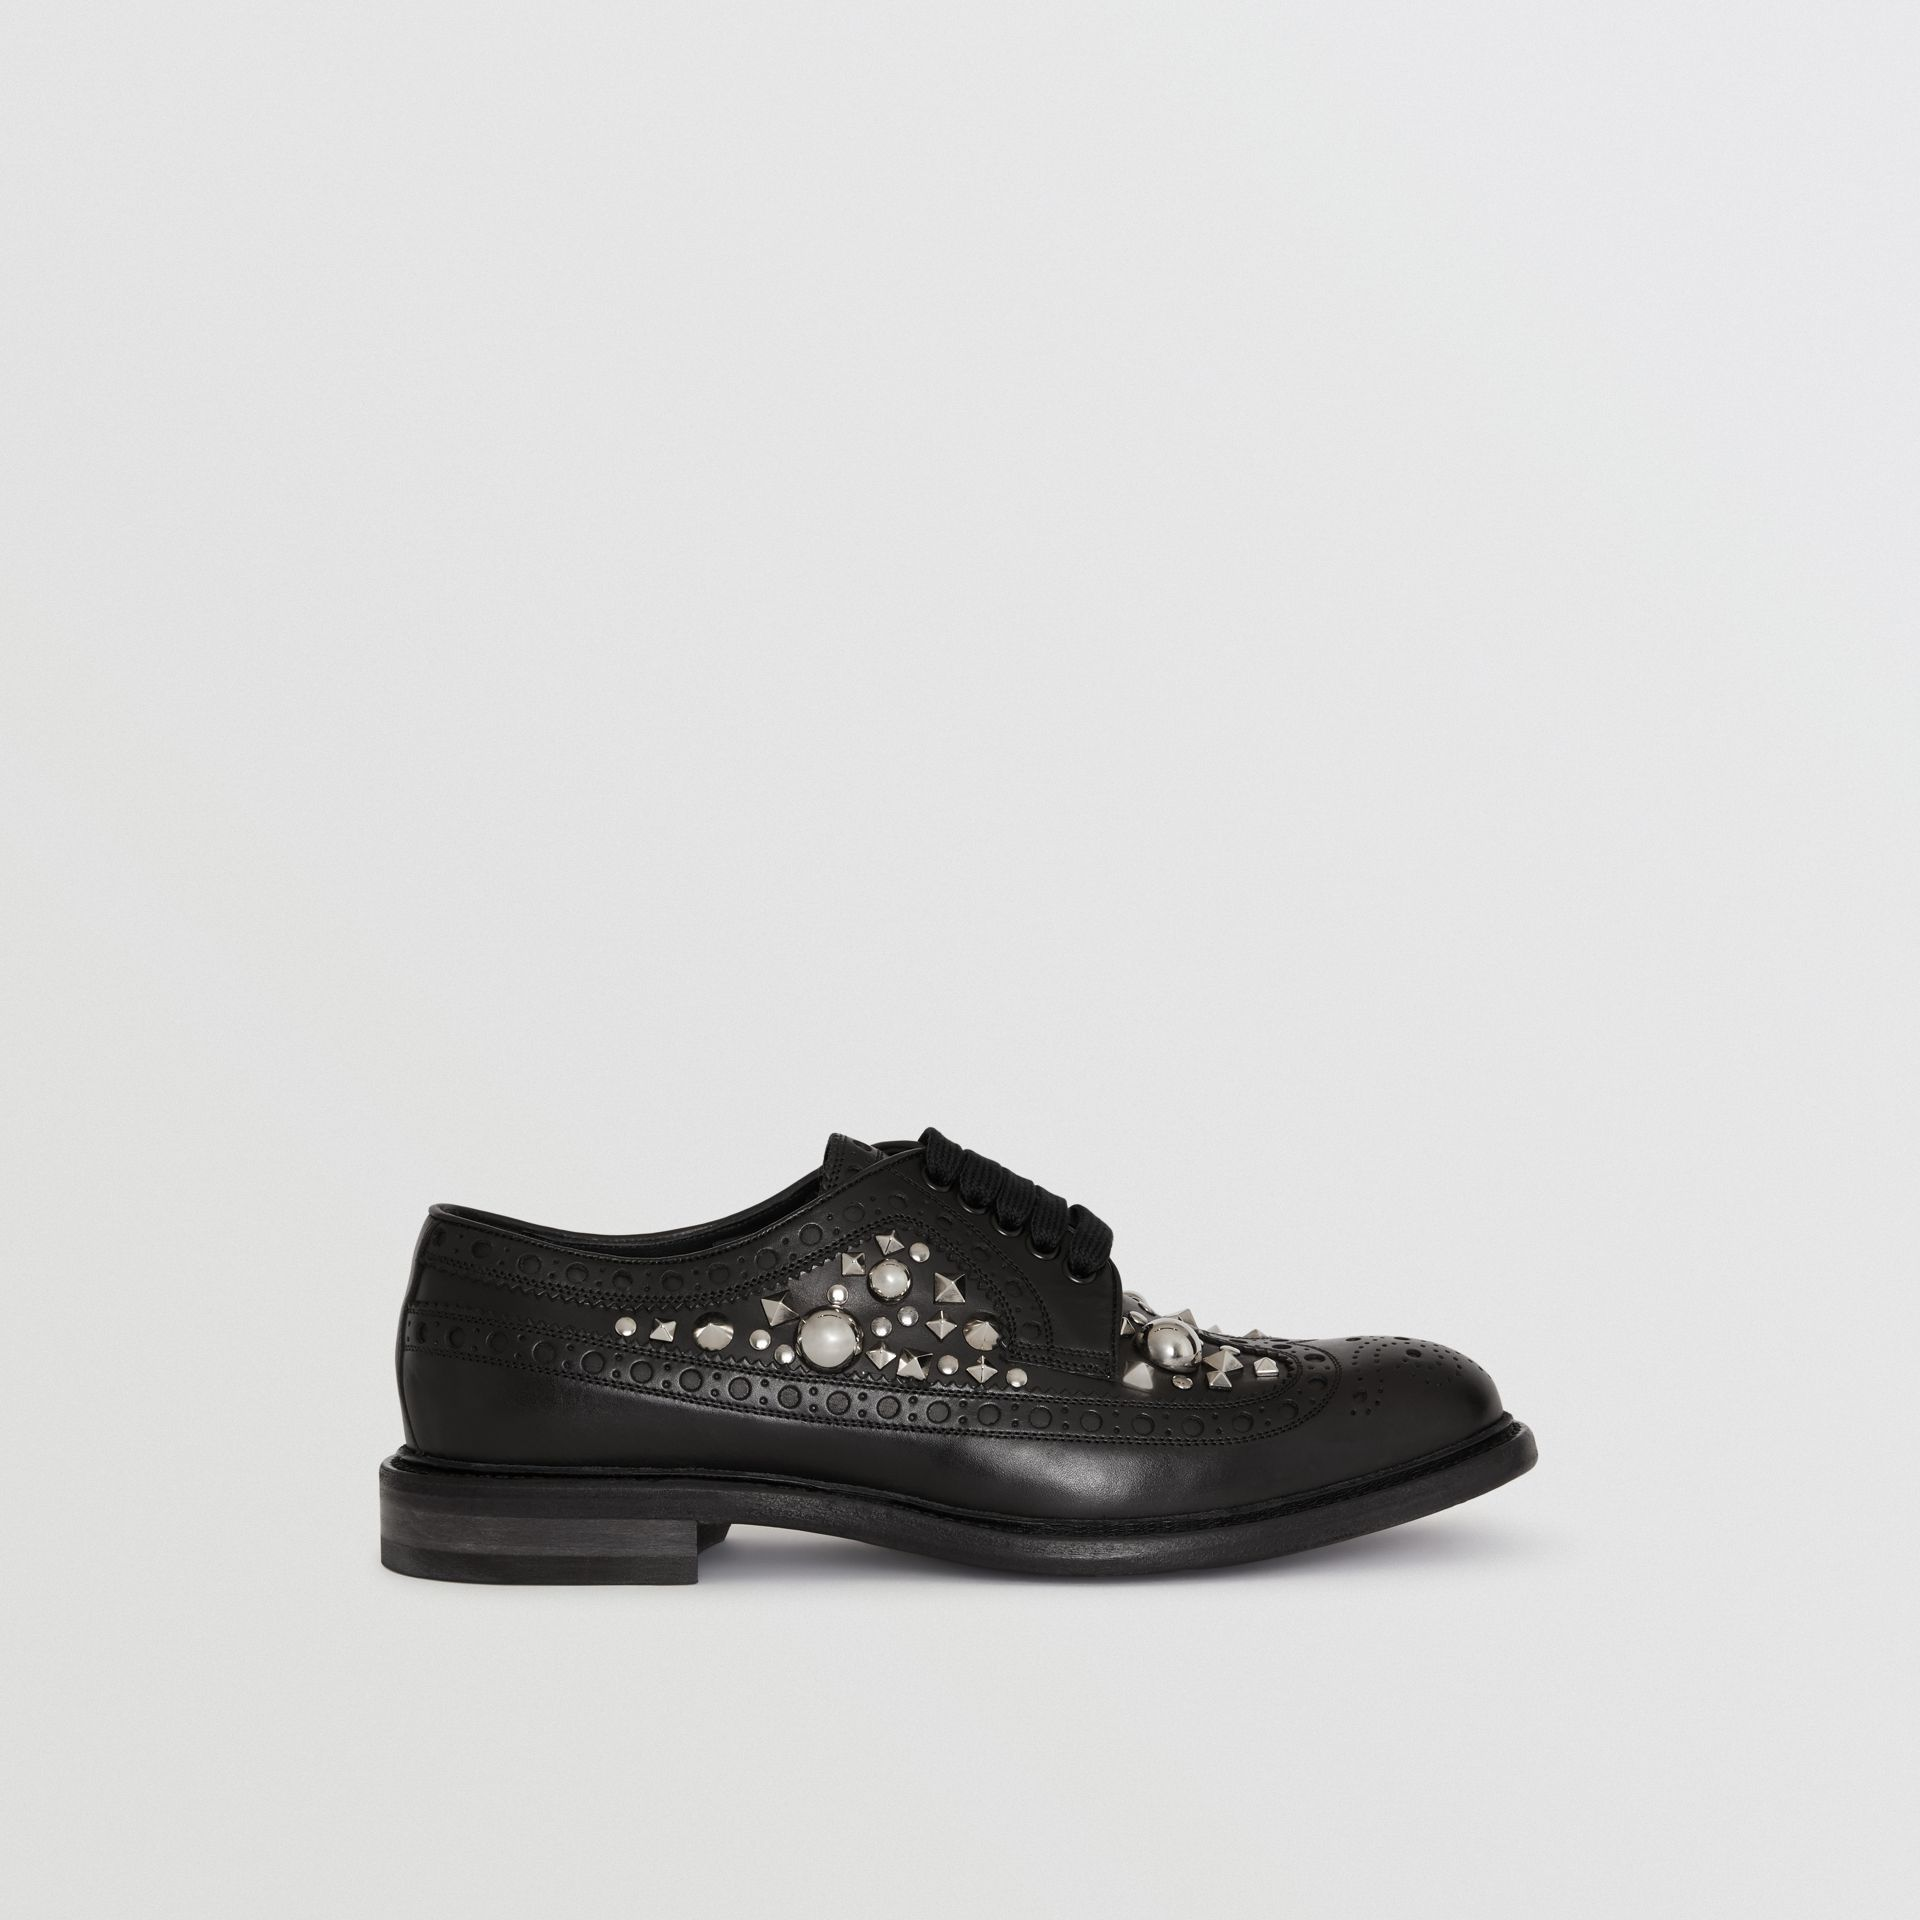 Stud Detail Leather Brogues in Black - Men | Burberry Hong Kong - gallery image 5